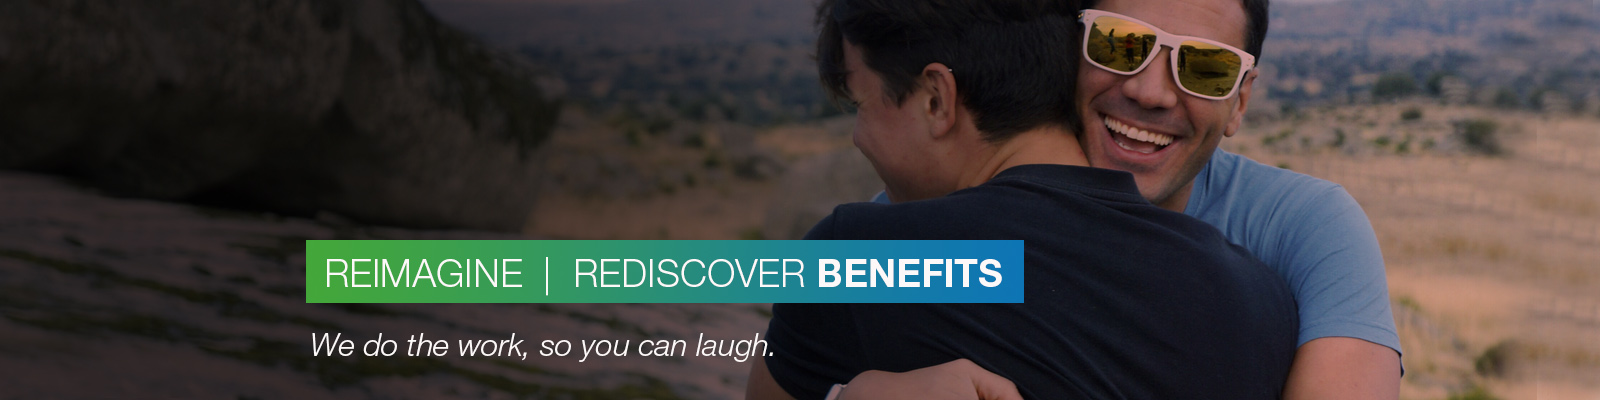 REIMAGINE | REDISCOVER BENEFITS: We do the work, so you can laugh.